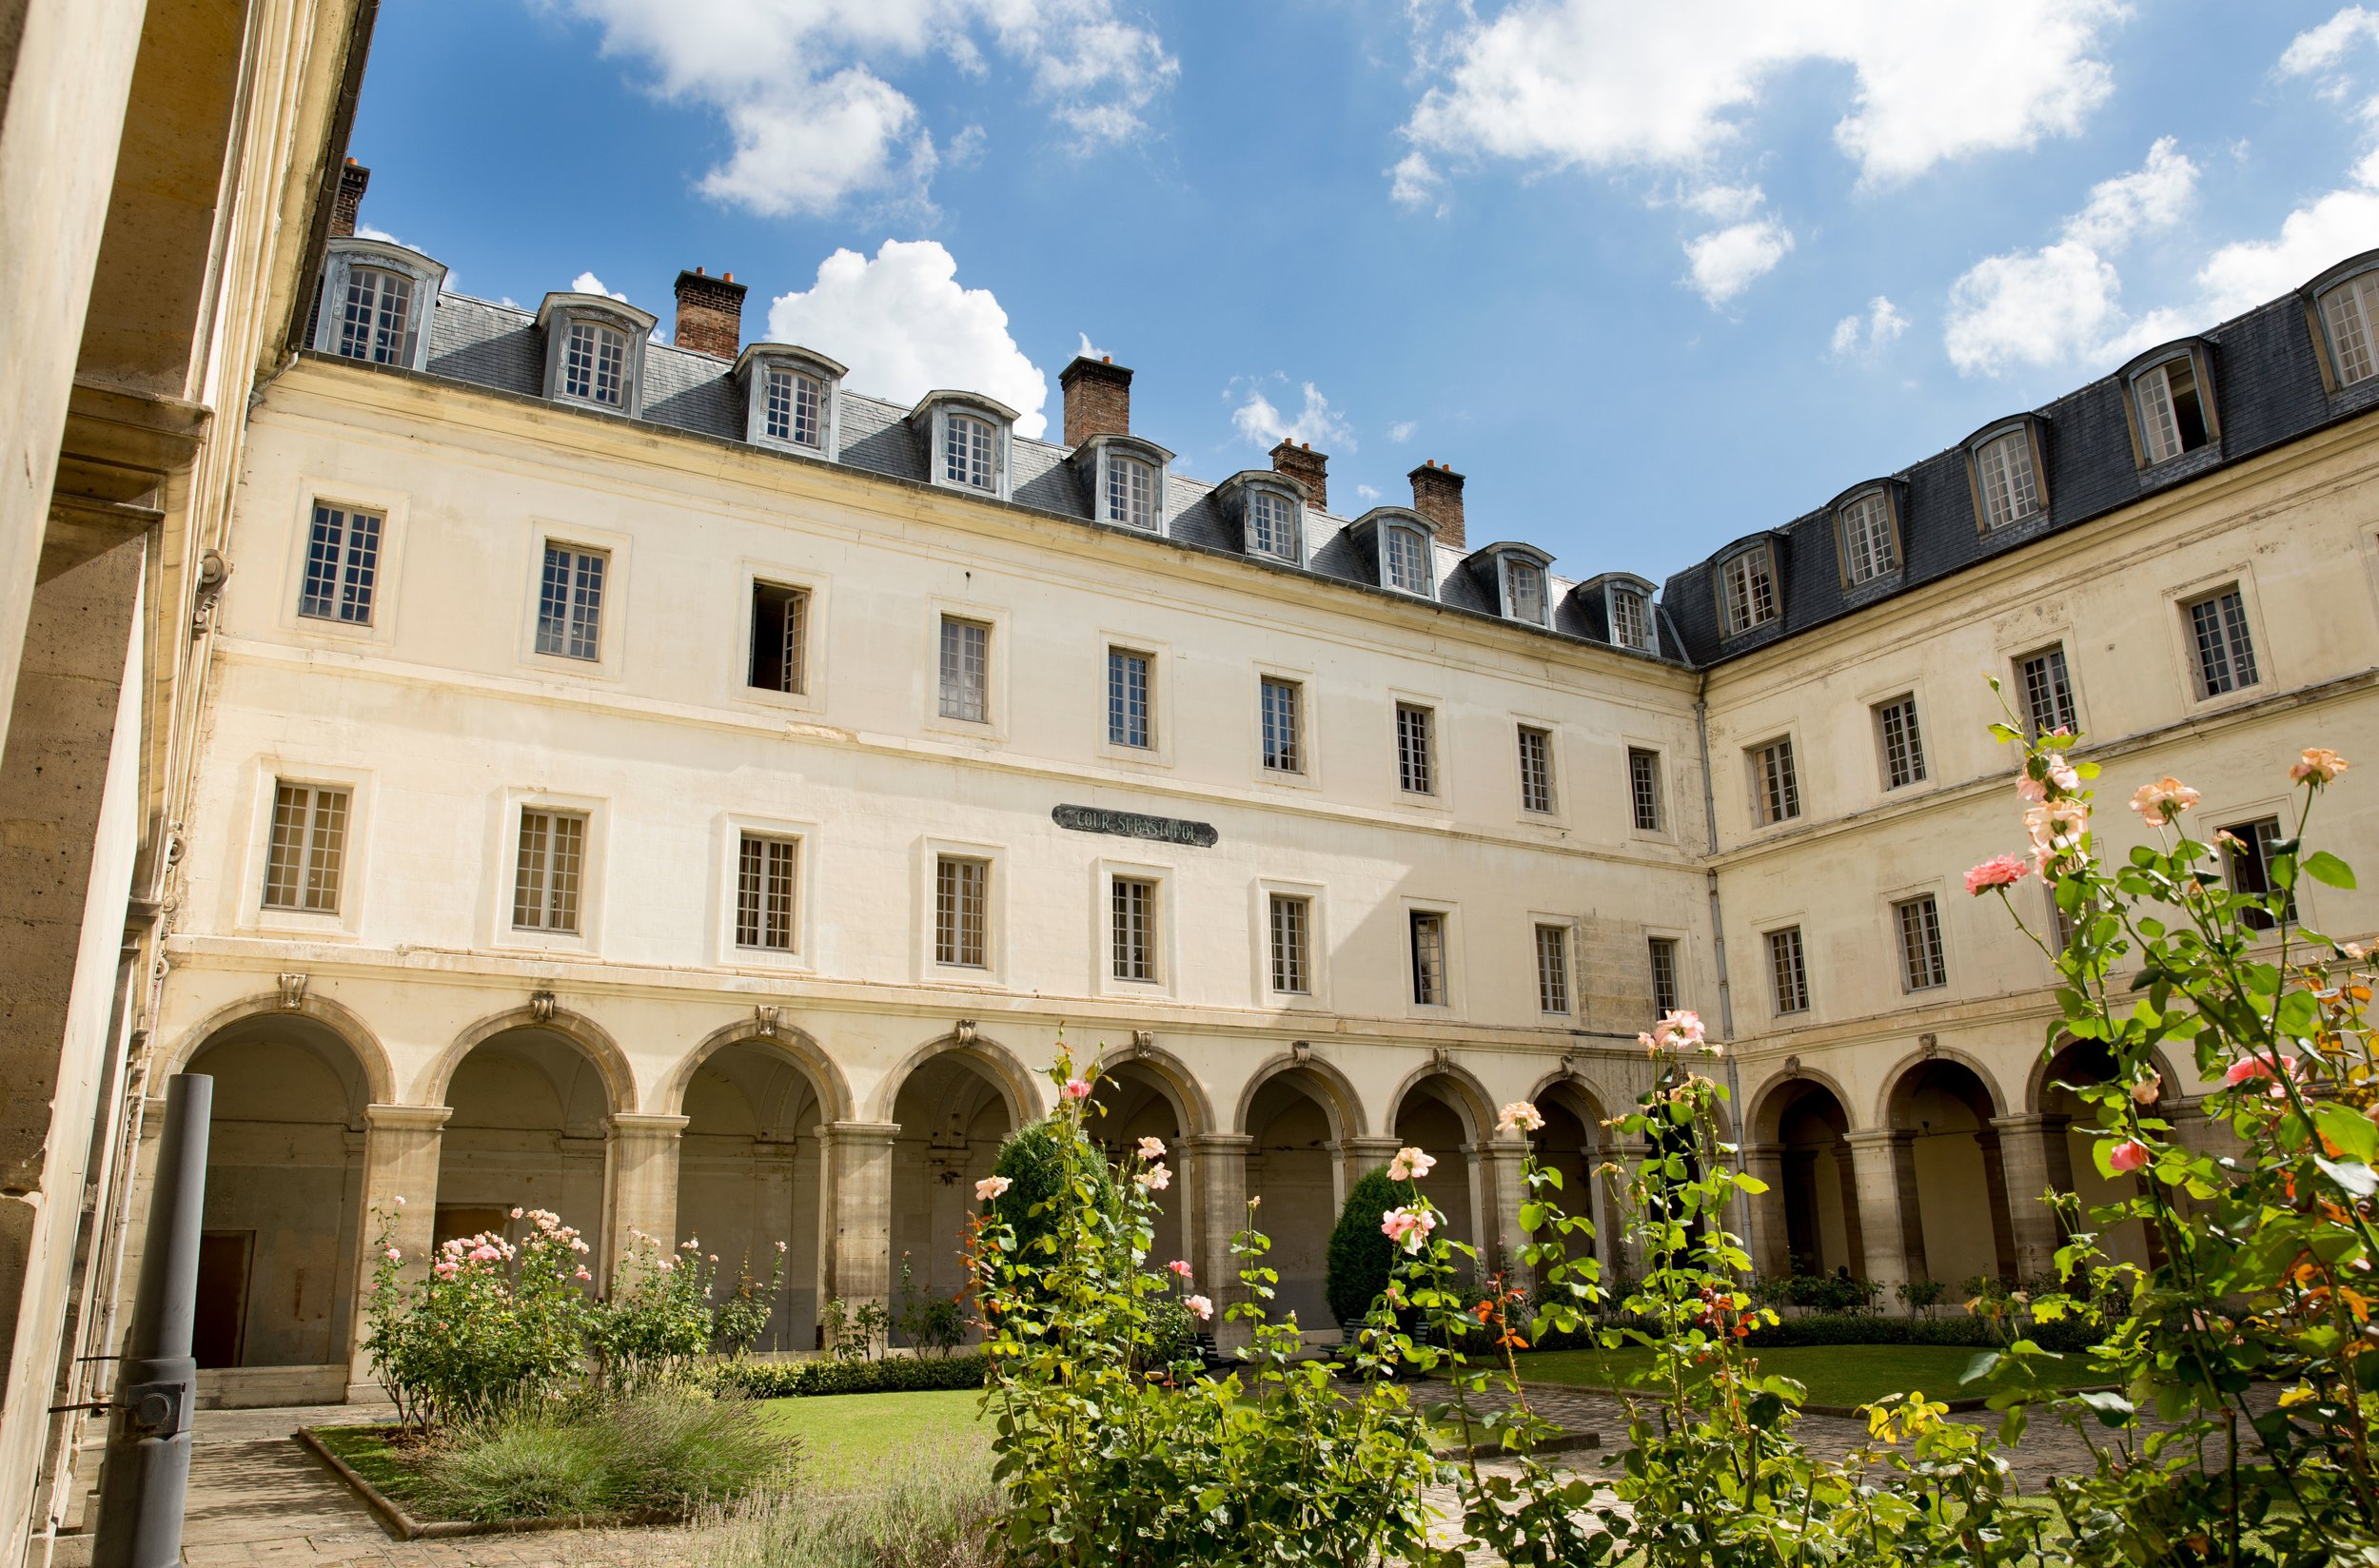 HOTEL DE L'ARTILLERIE, Paris  A prospective report on the future of learning